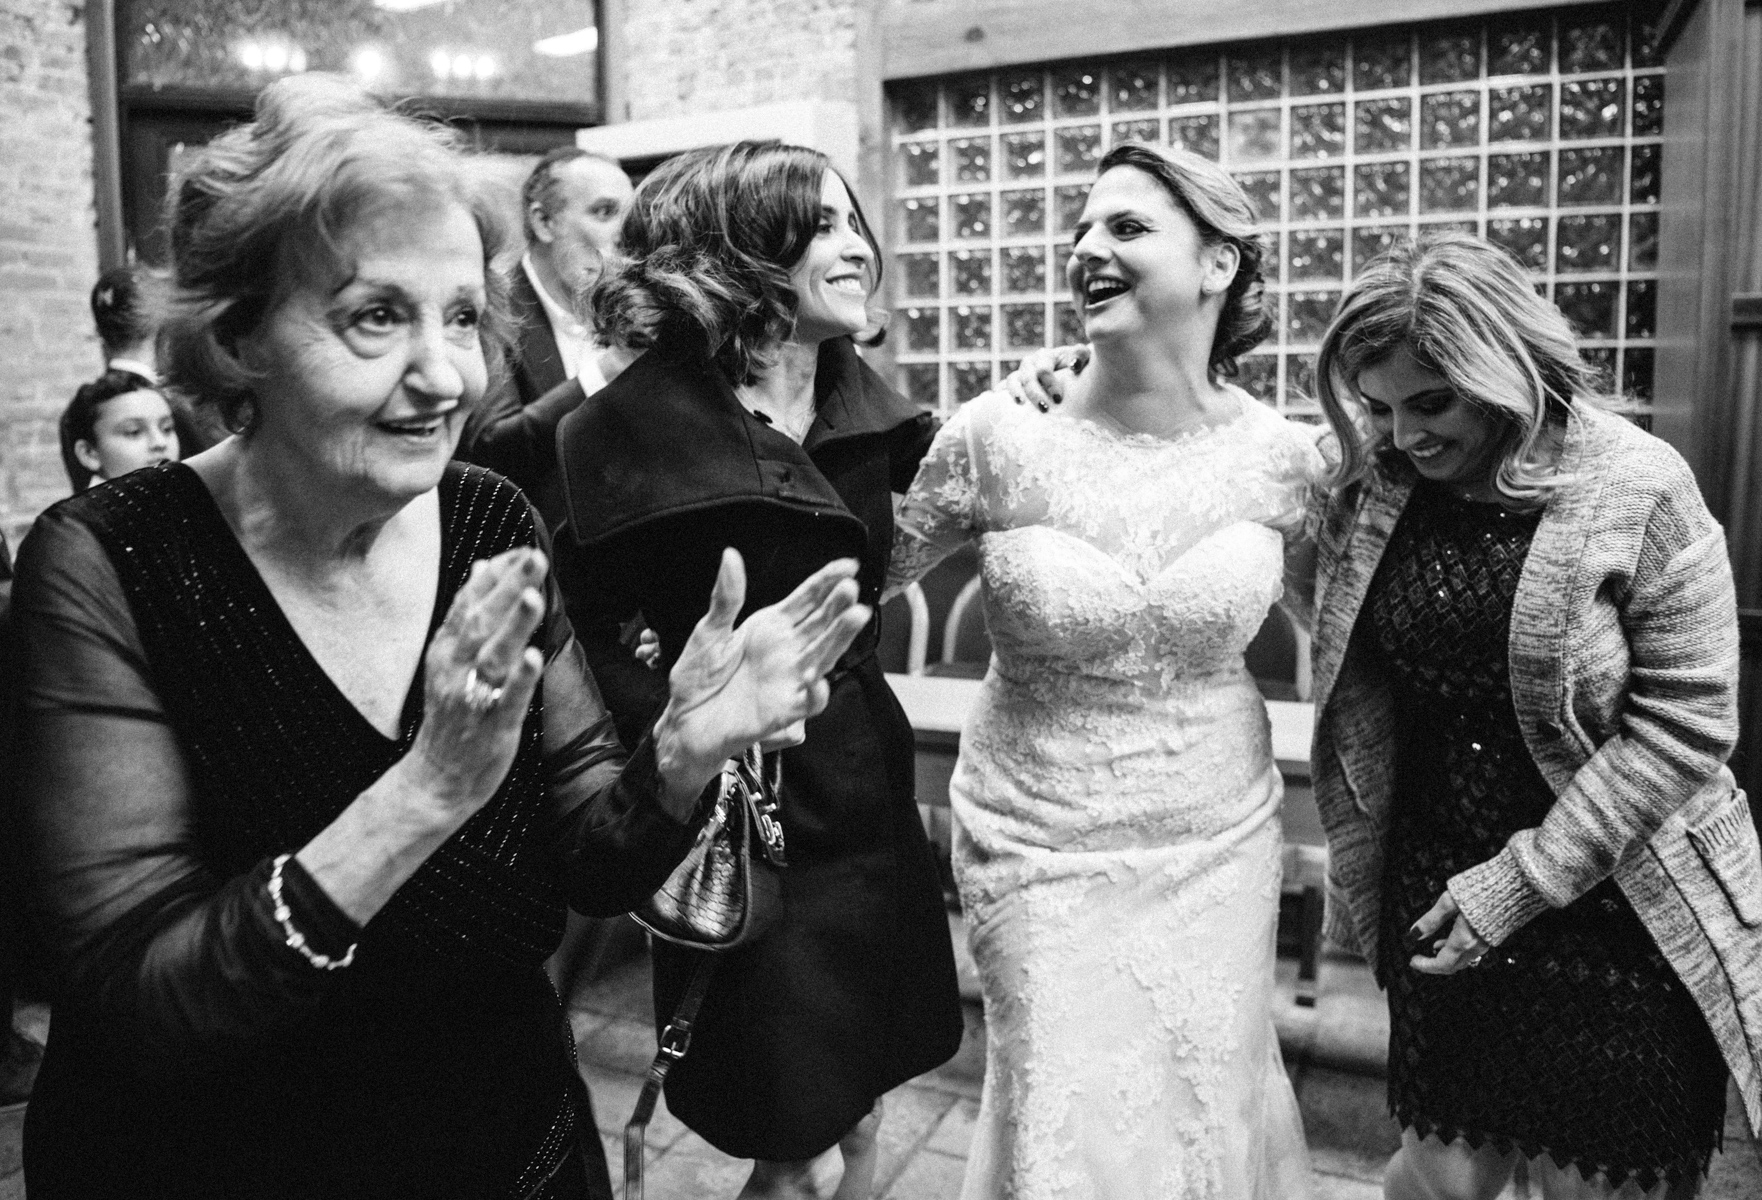 20181204_OrthodoxWedding_ML-3.jpg